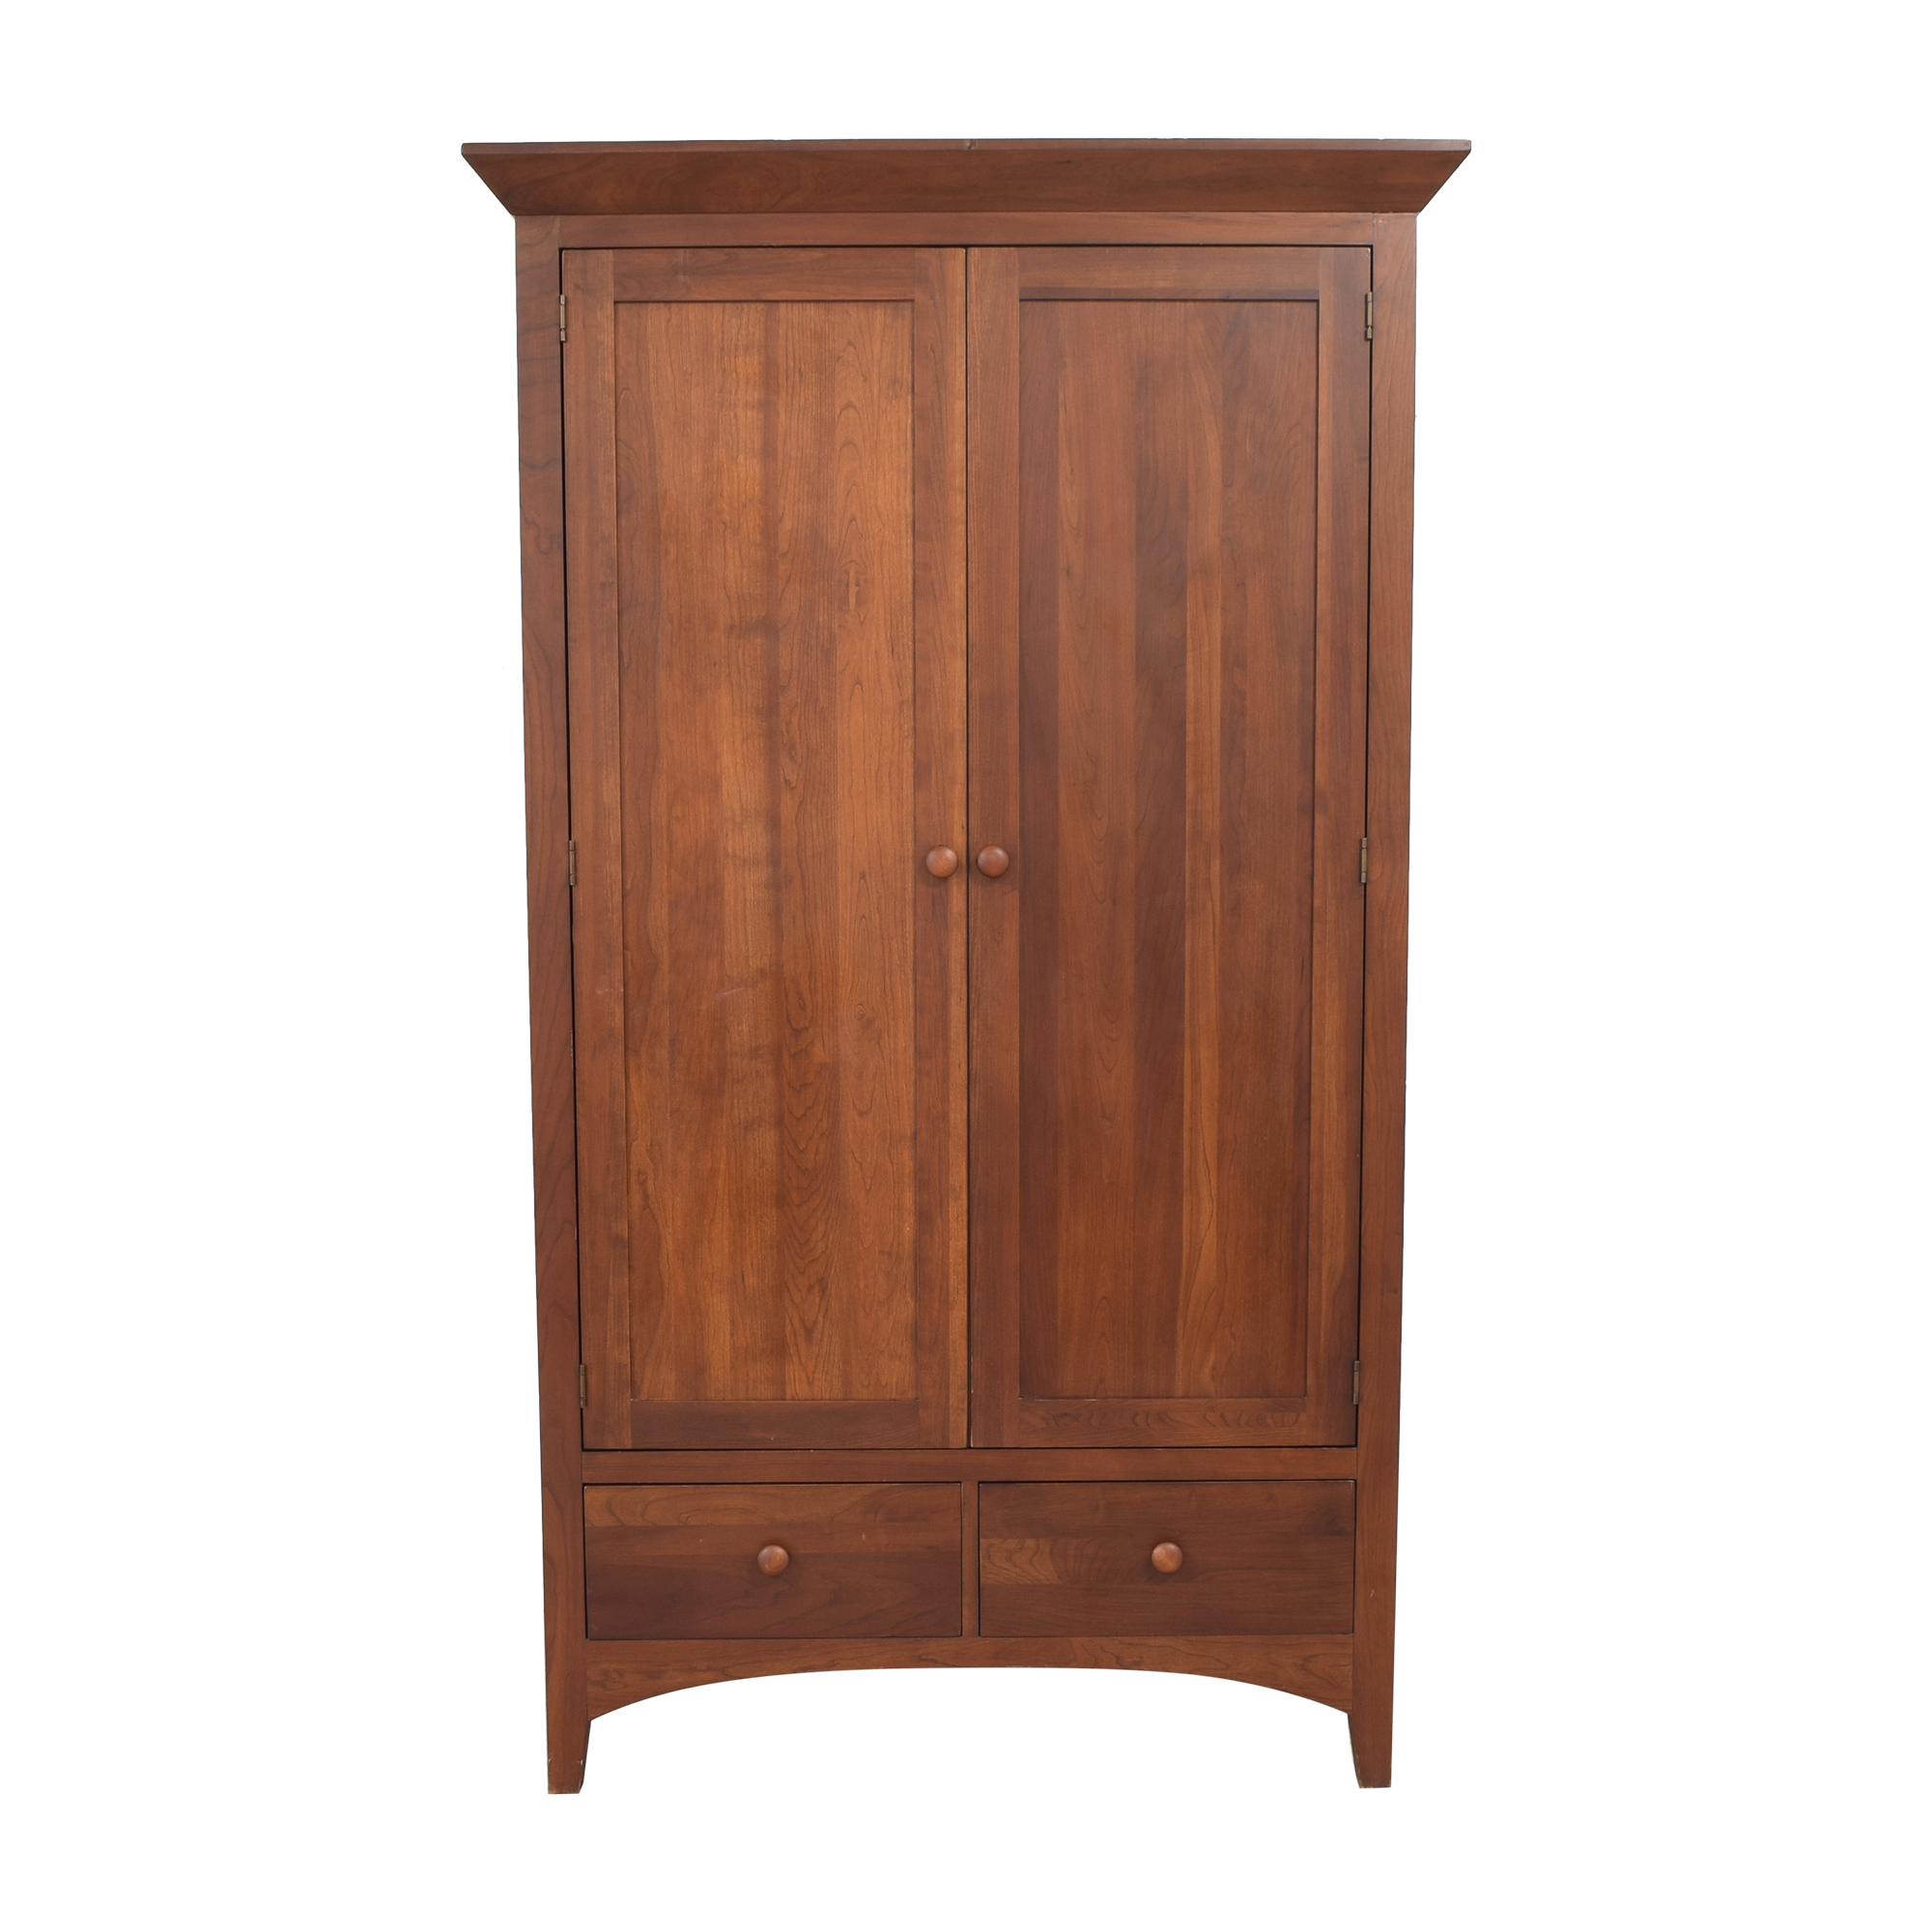 Ethan Allen American Impressions Armoire / Wardrobes & Armoires